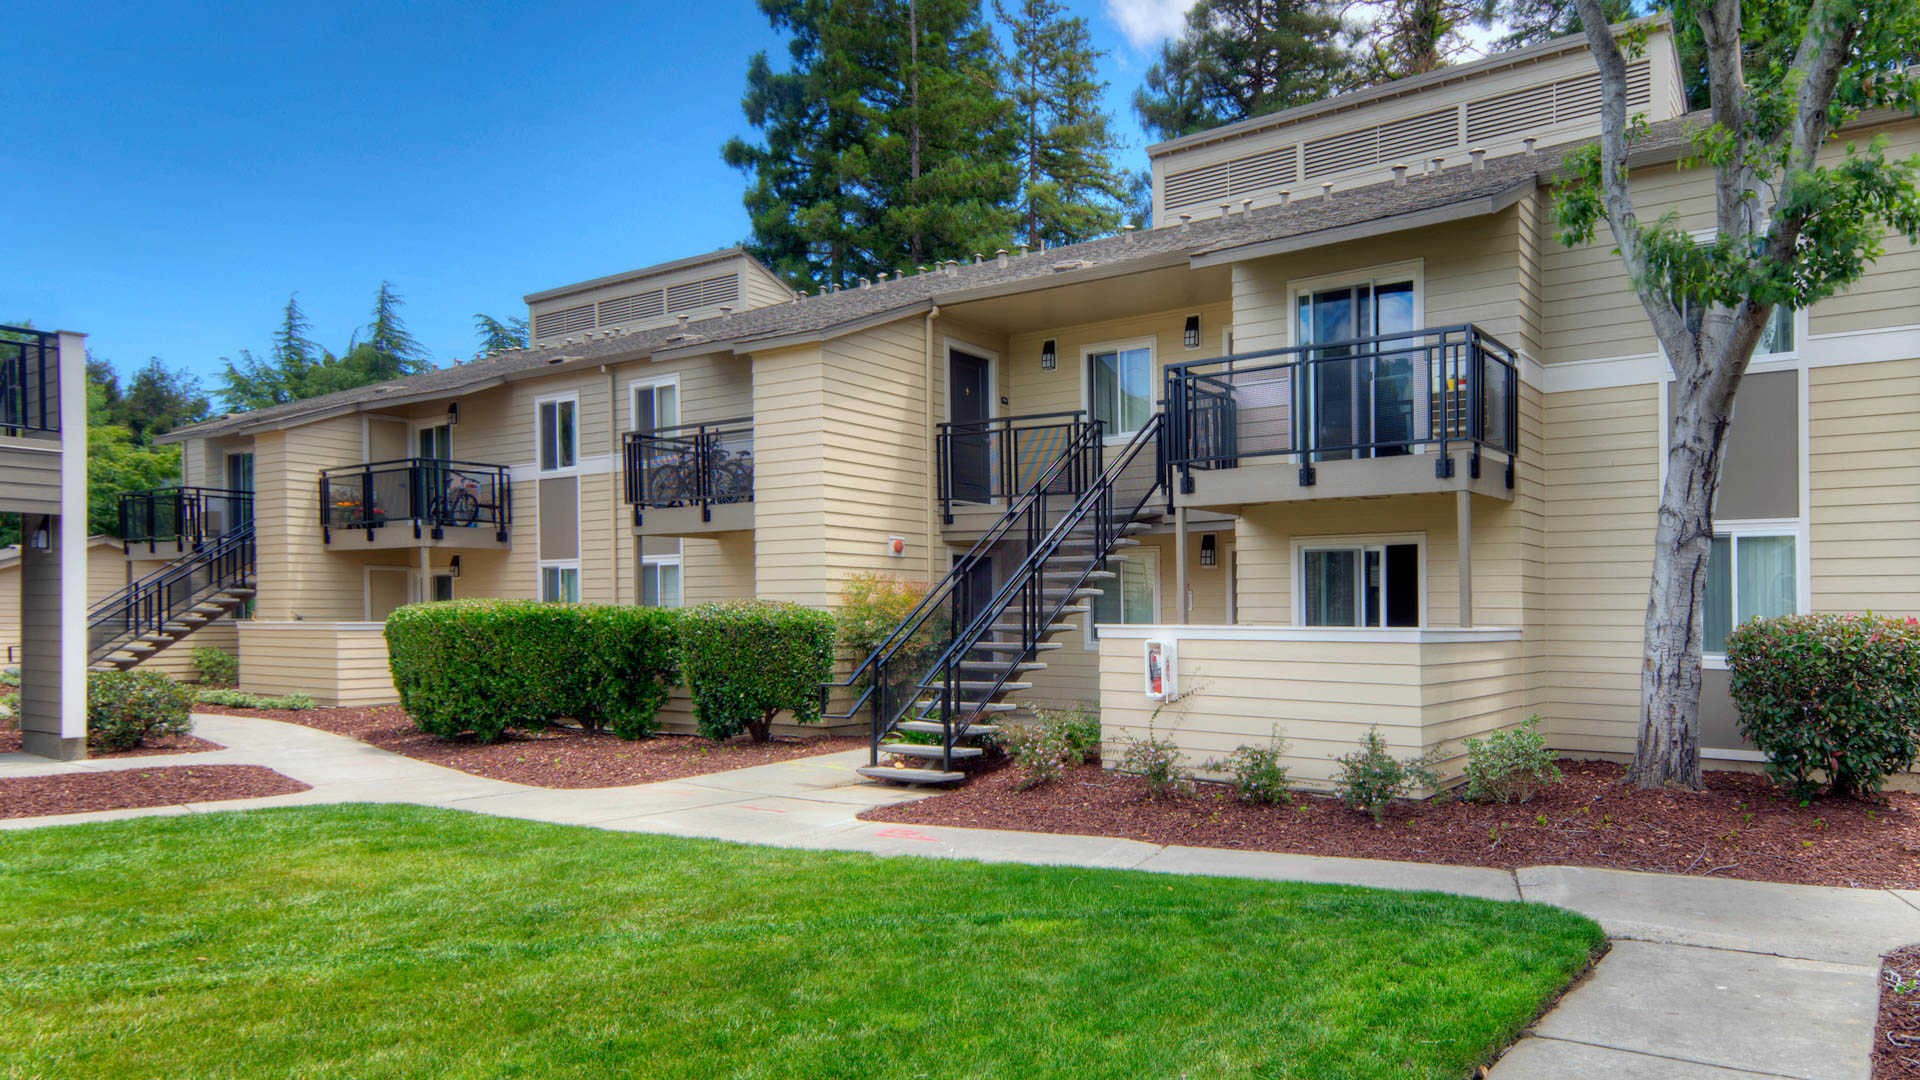 arbor terrace sunnyvale see reviews pics amp avail 87833